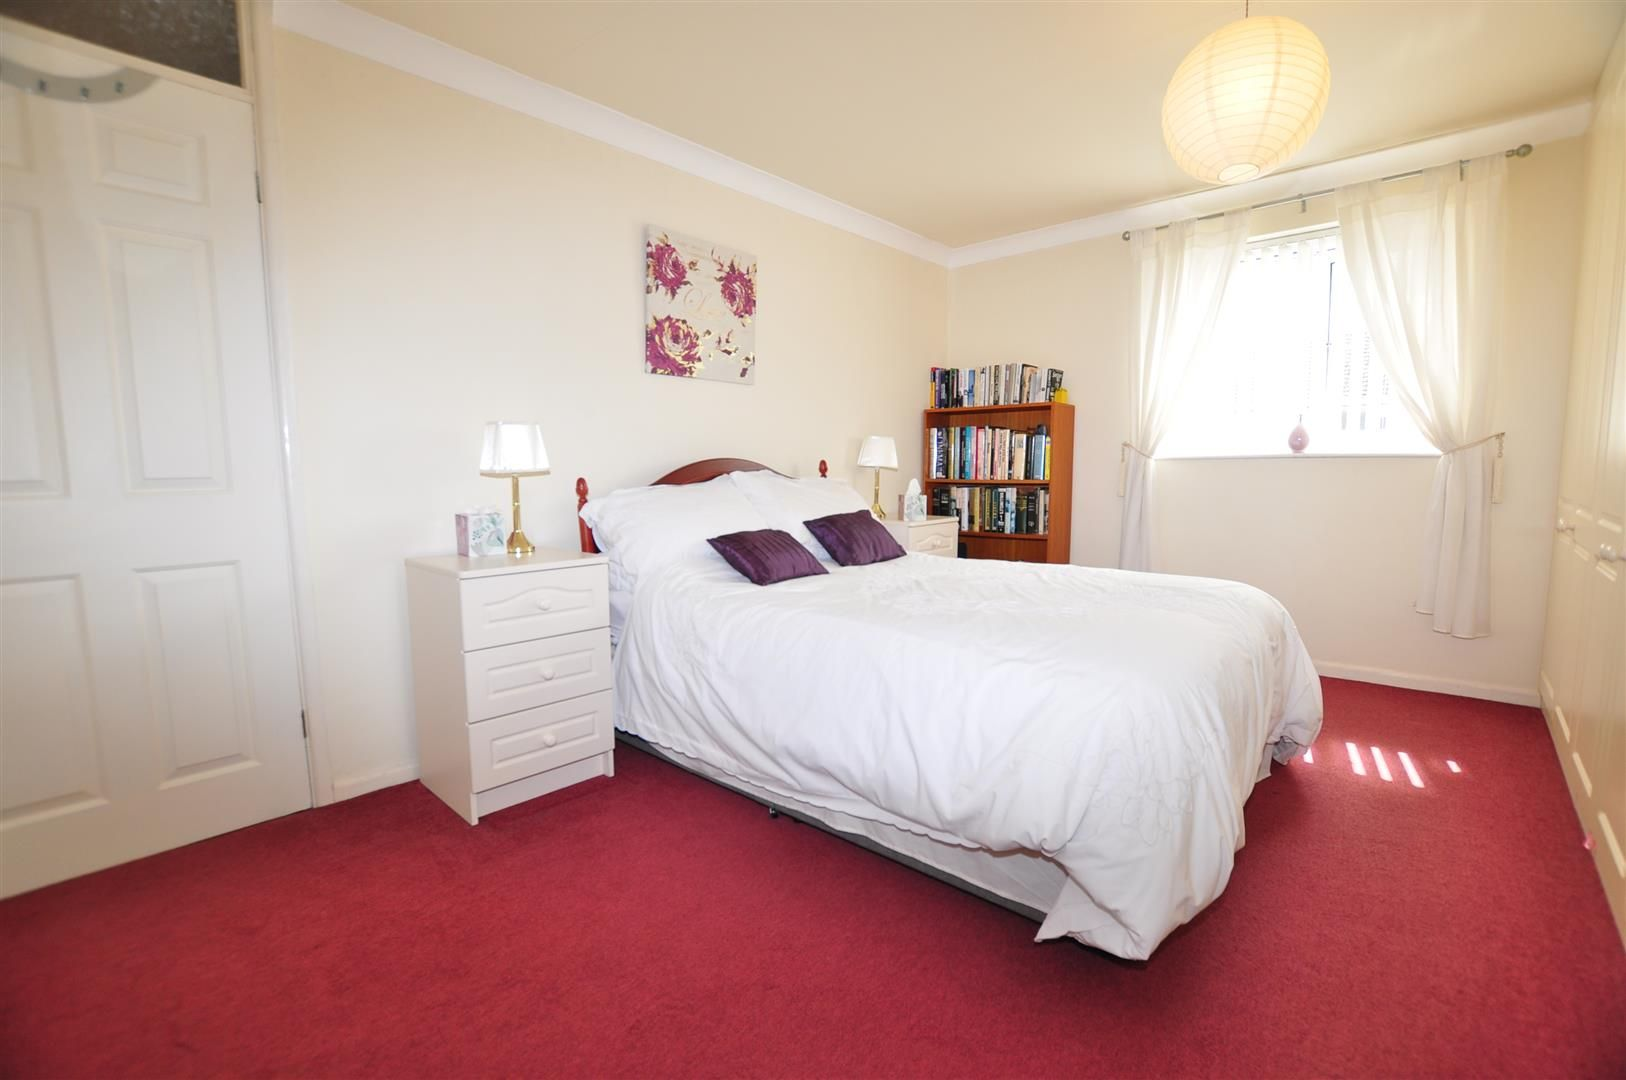 3 bed house for sale in Hagley 7